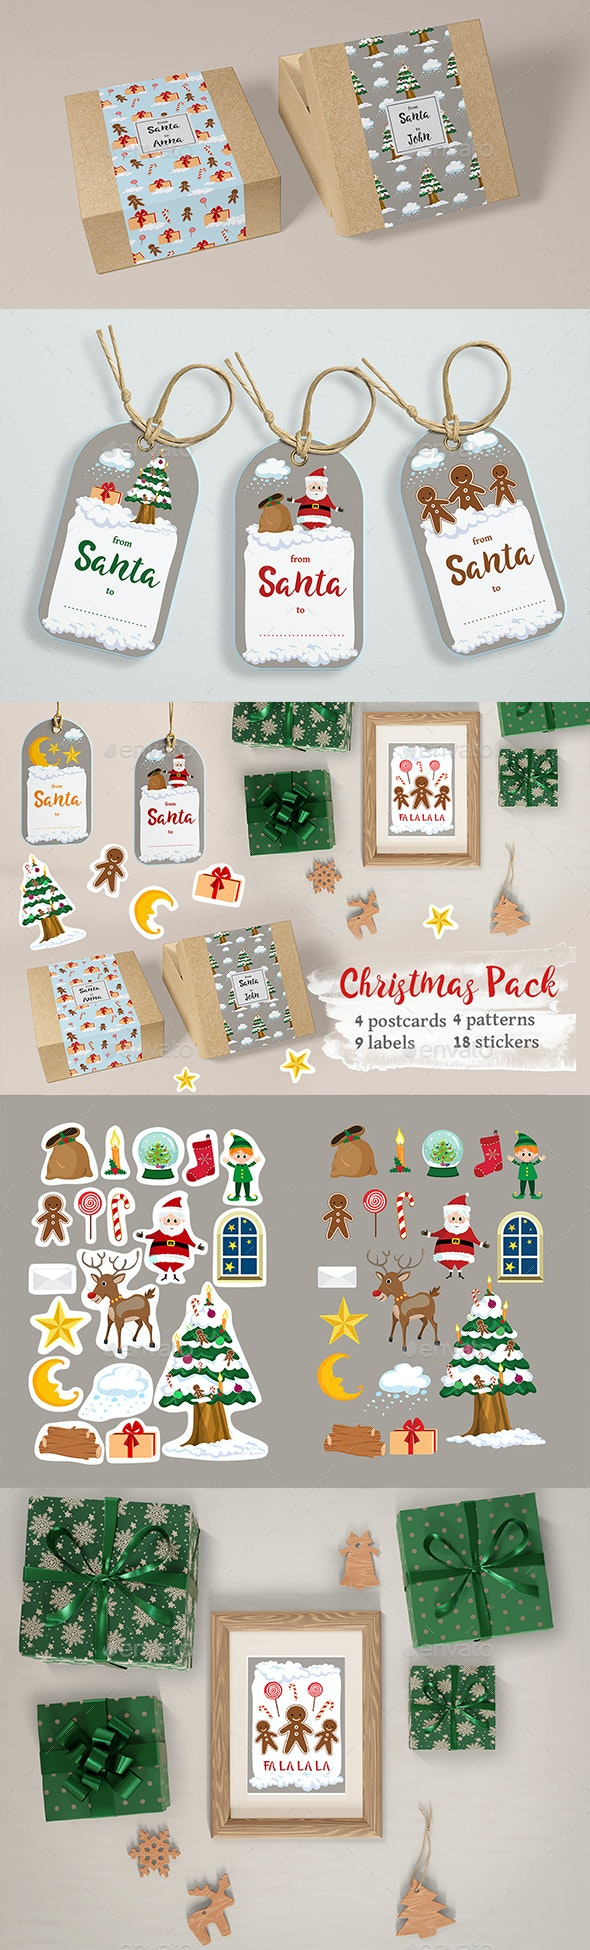 Christmas Labels and Stickers - Christmas Seasons/Holidays